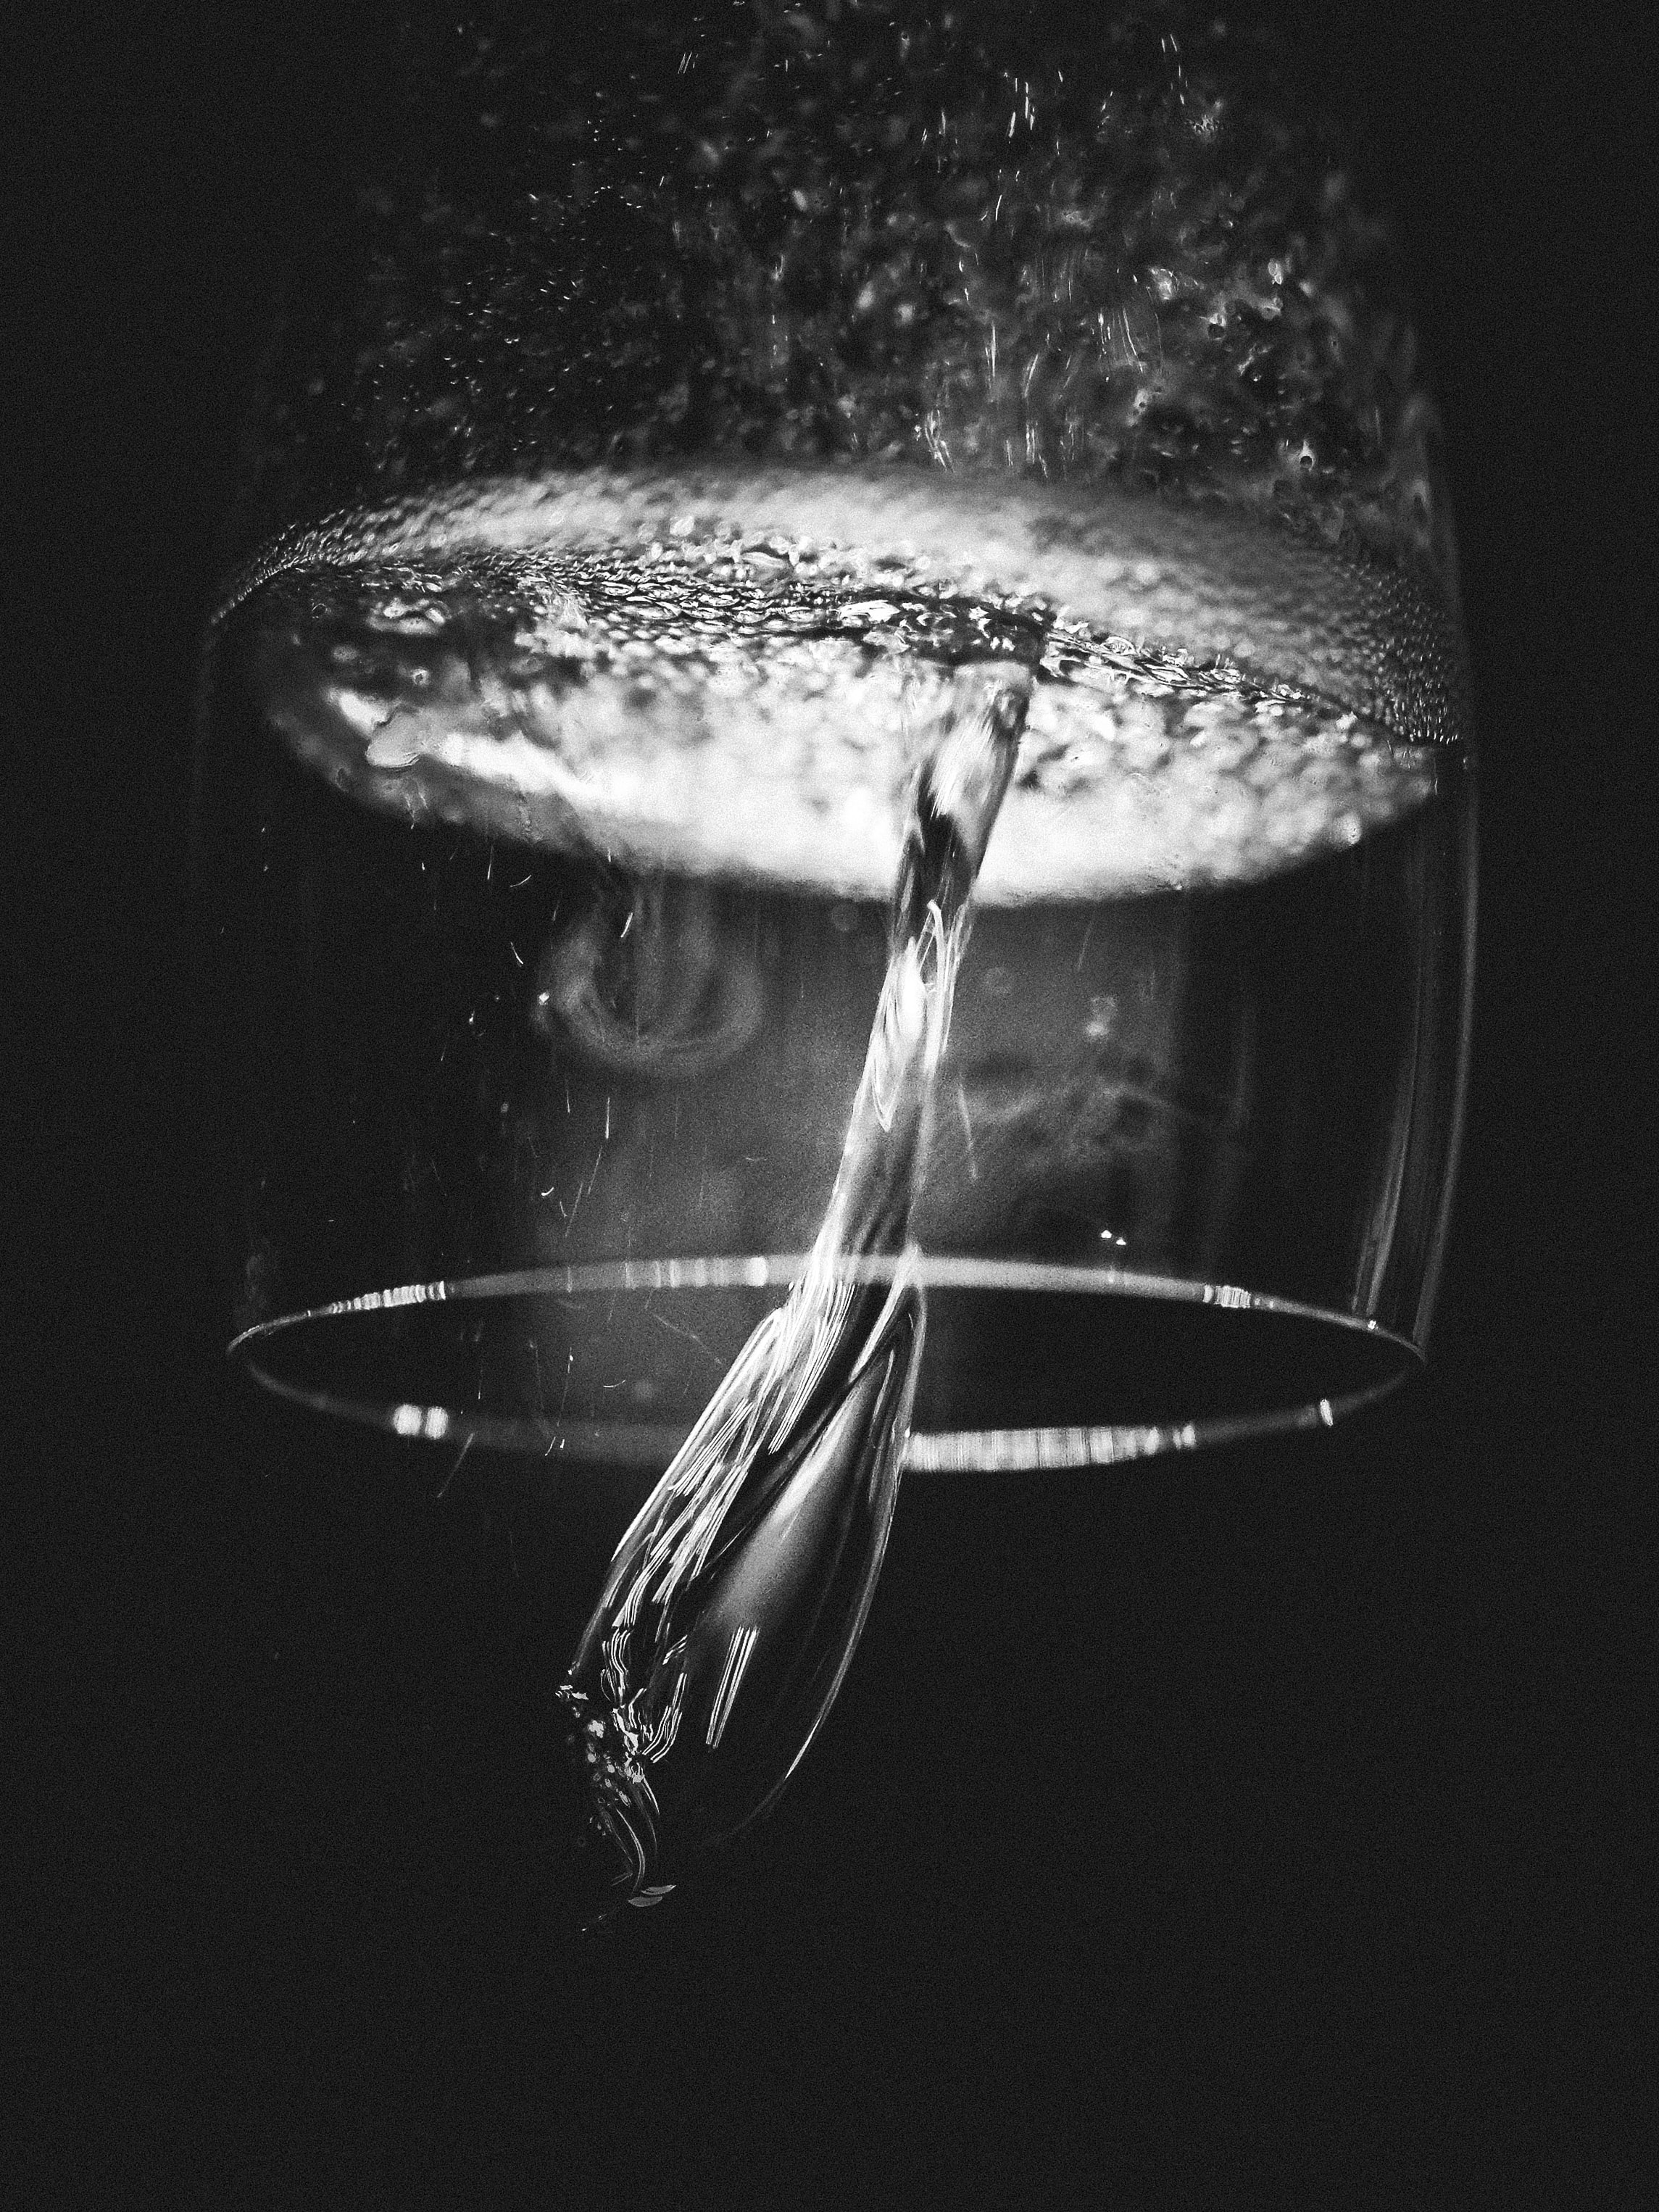 grayscale photo of jelly fish